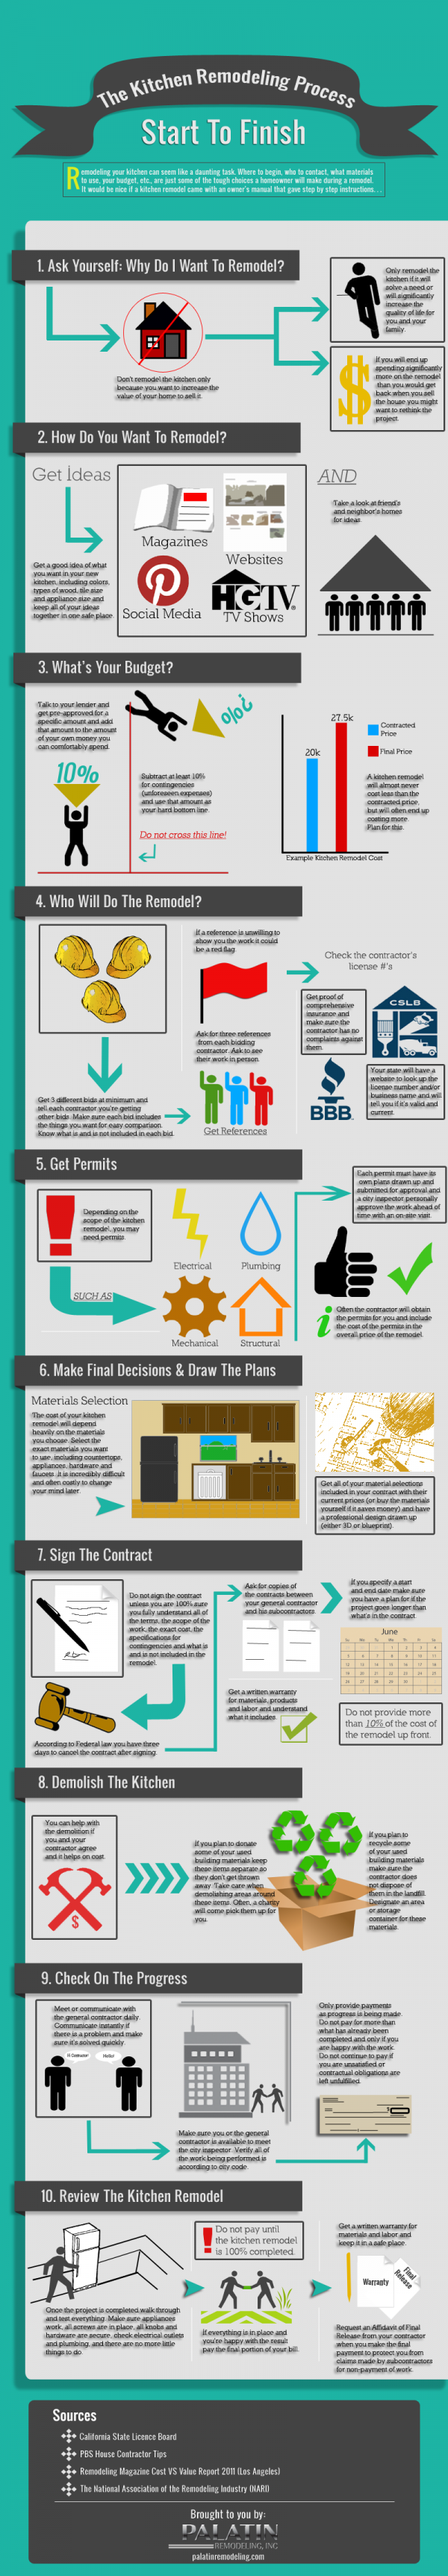 palatin-kitchen-infographic-copy